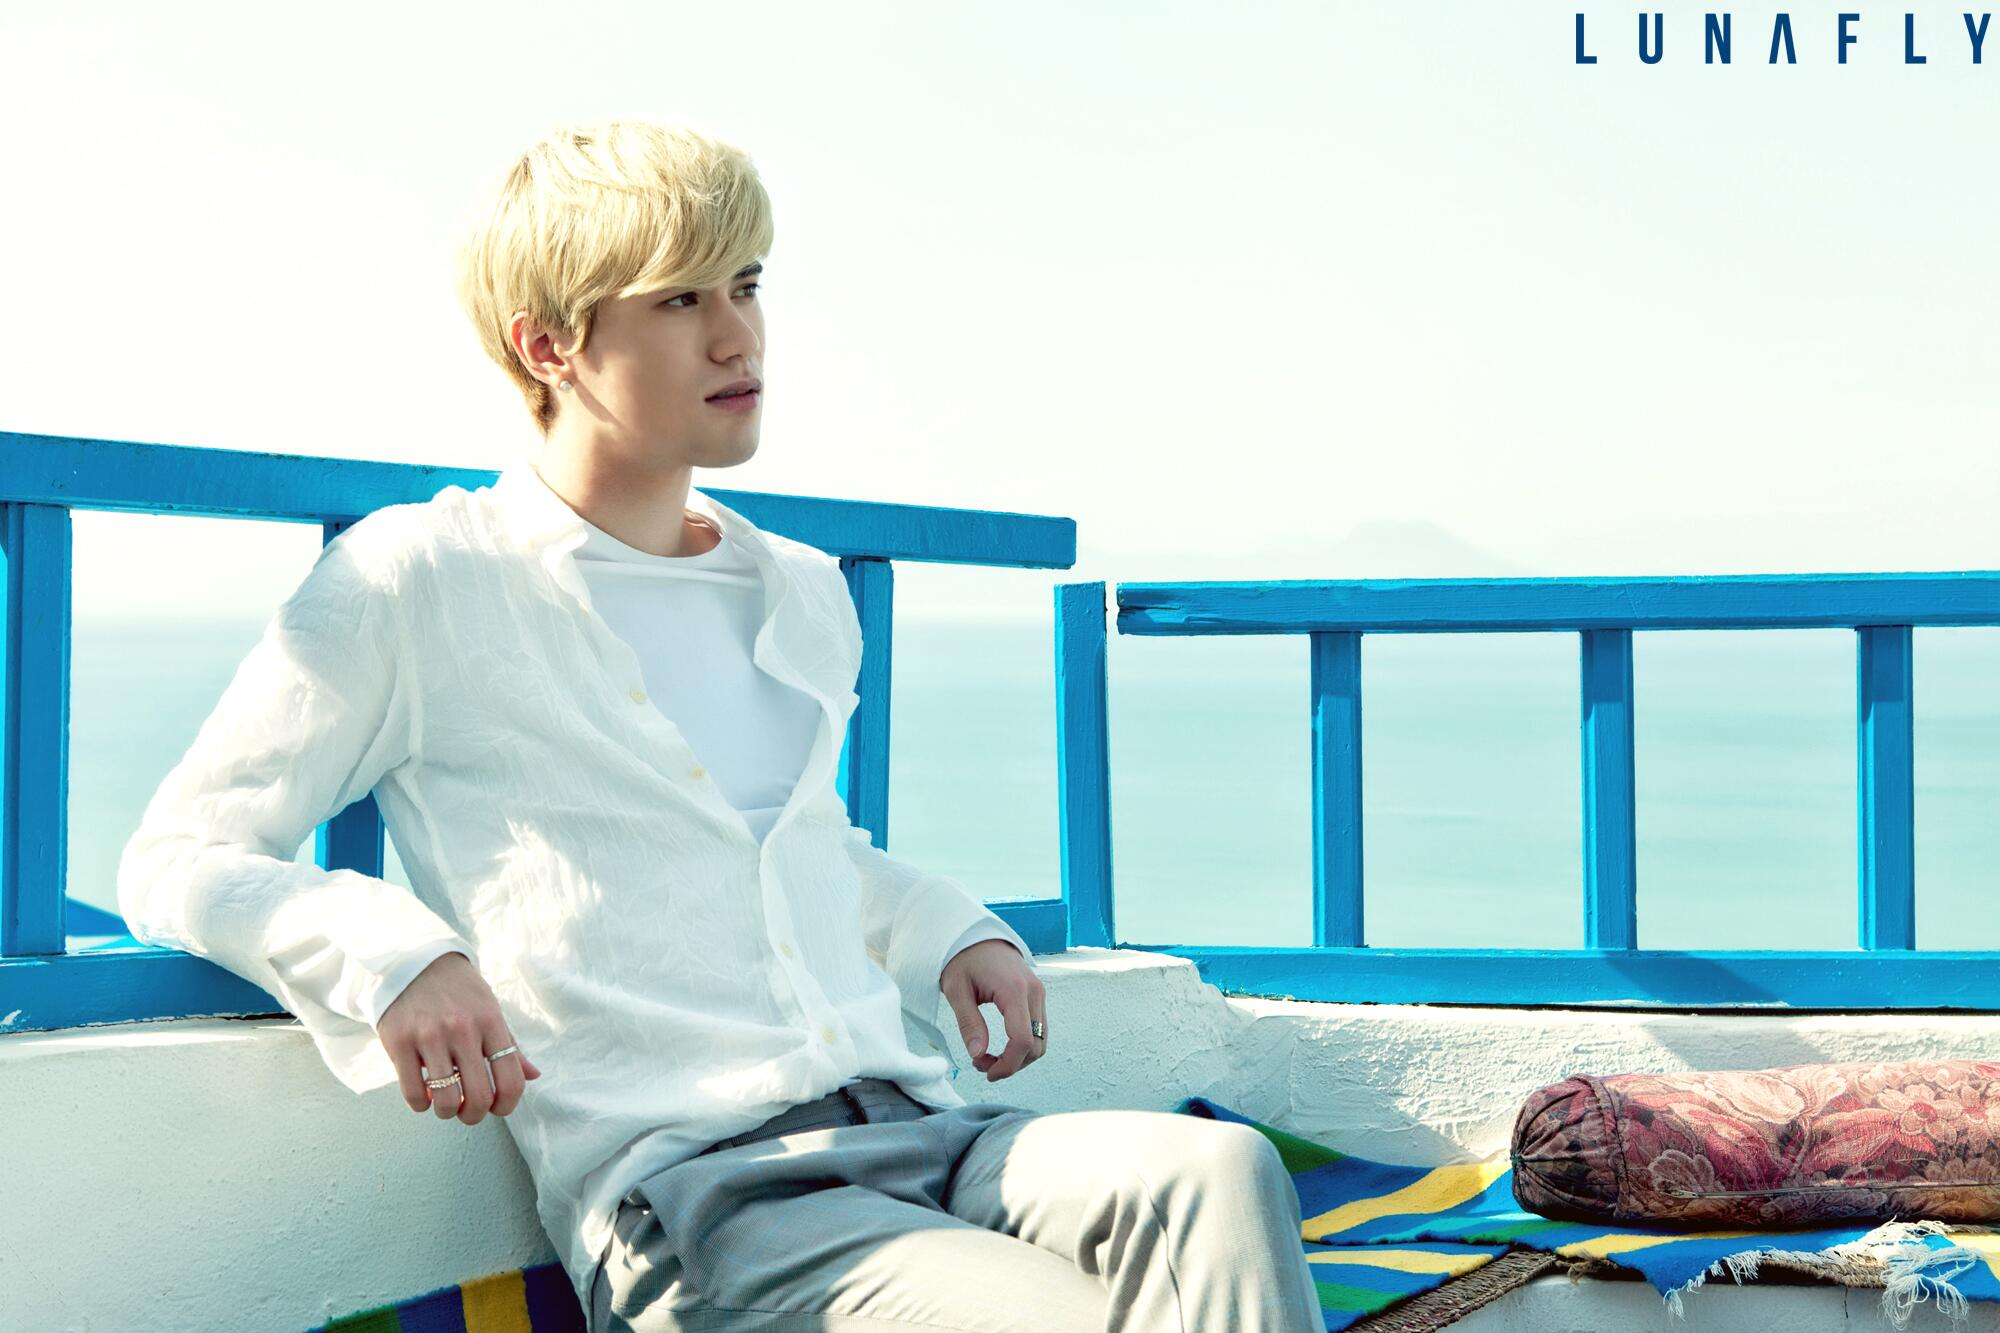 RT @officialLUNAFLY: [Photo]SAM's Official photo 1 http://t.co/yWWYHgya0n